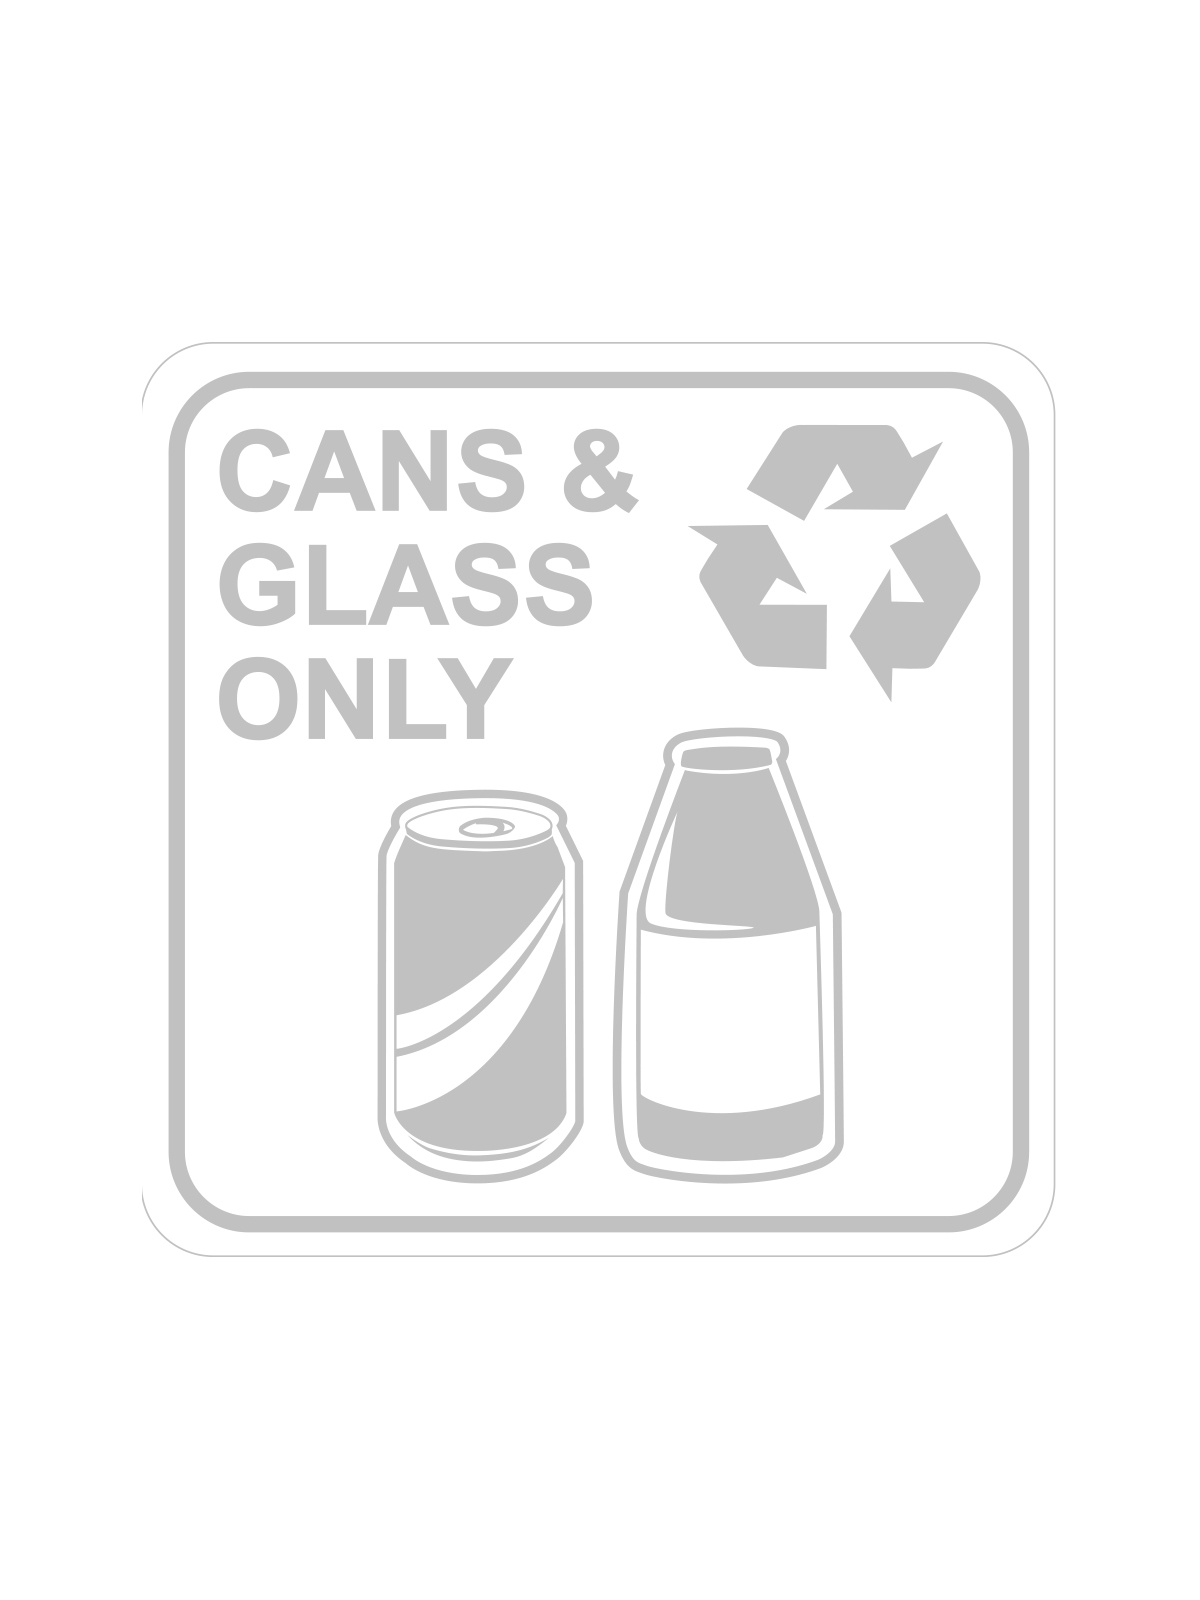 SQUARE LABEL CANS & GLASS ONLY